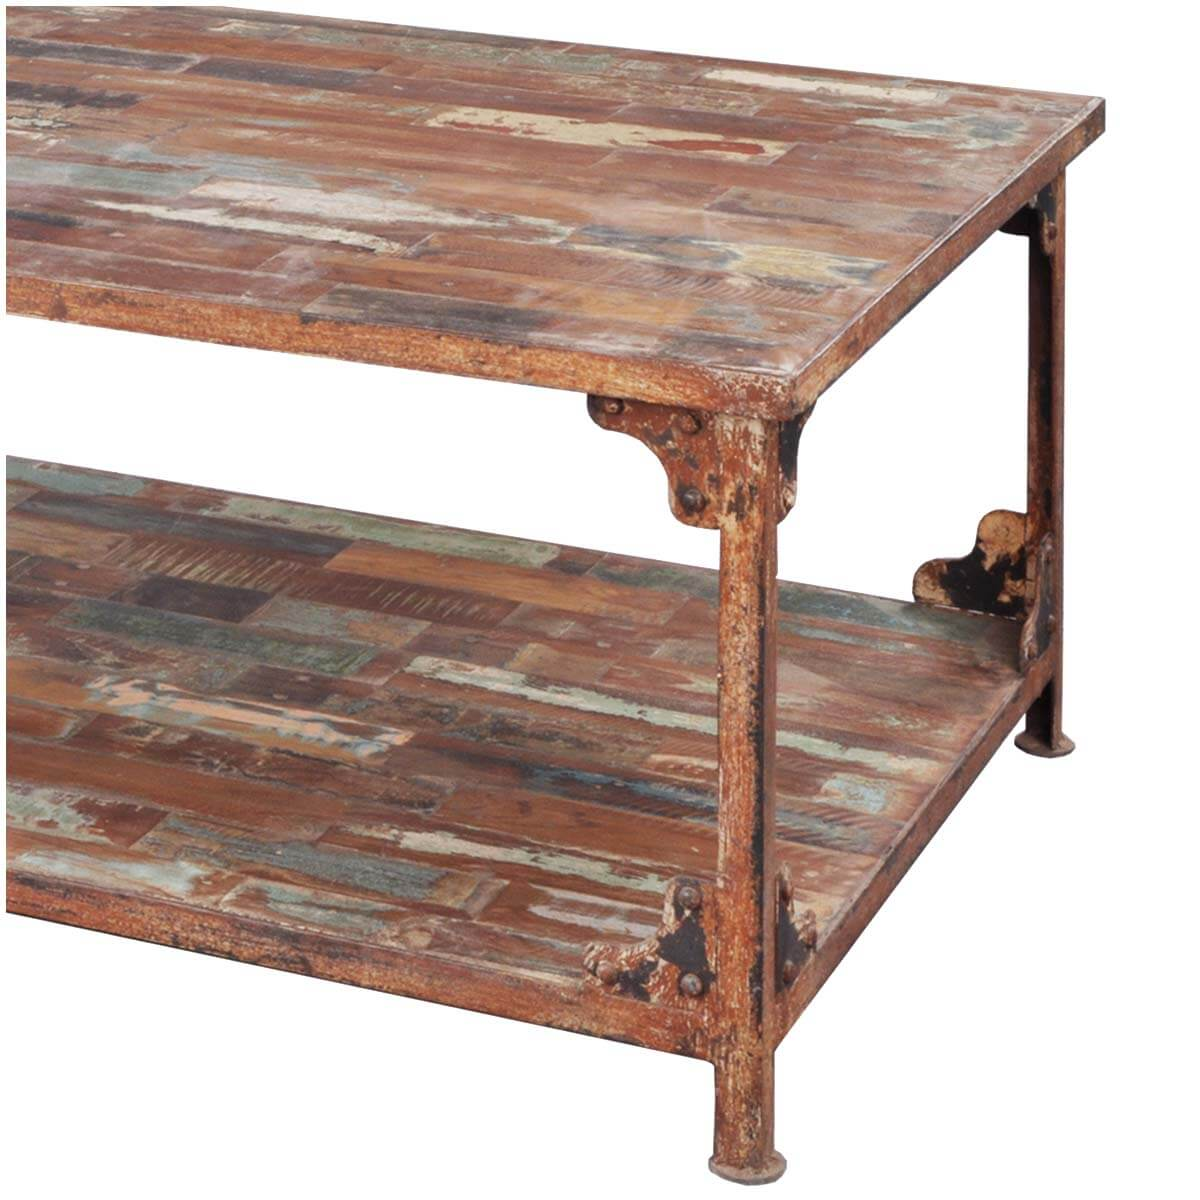 Distressed Reclaimed Wood Wrought Iron Industrial Rustic